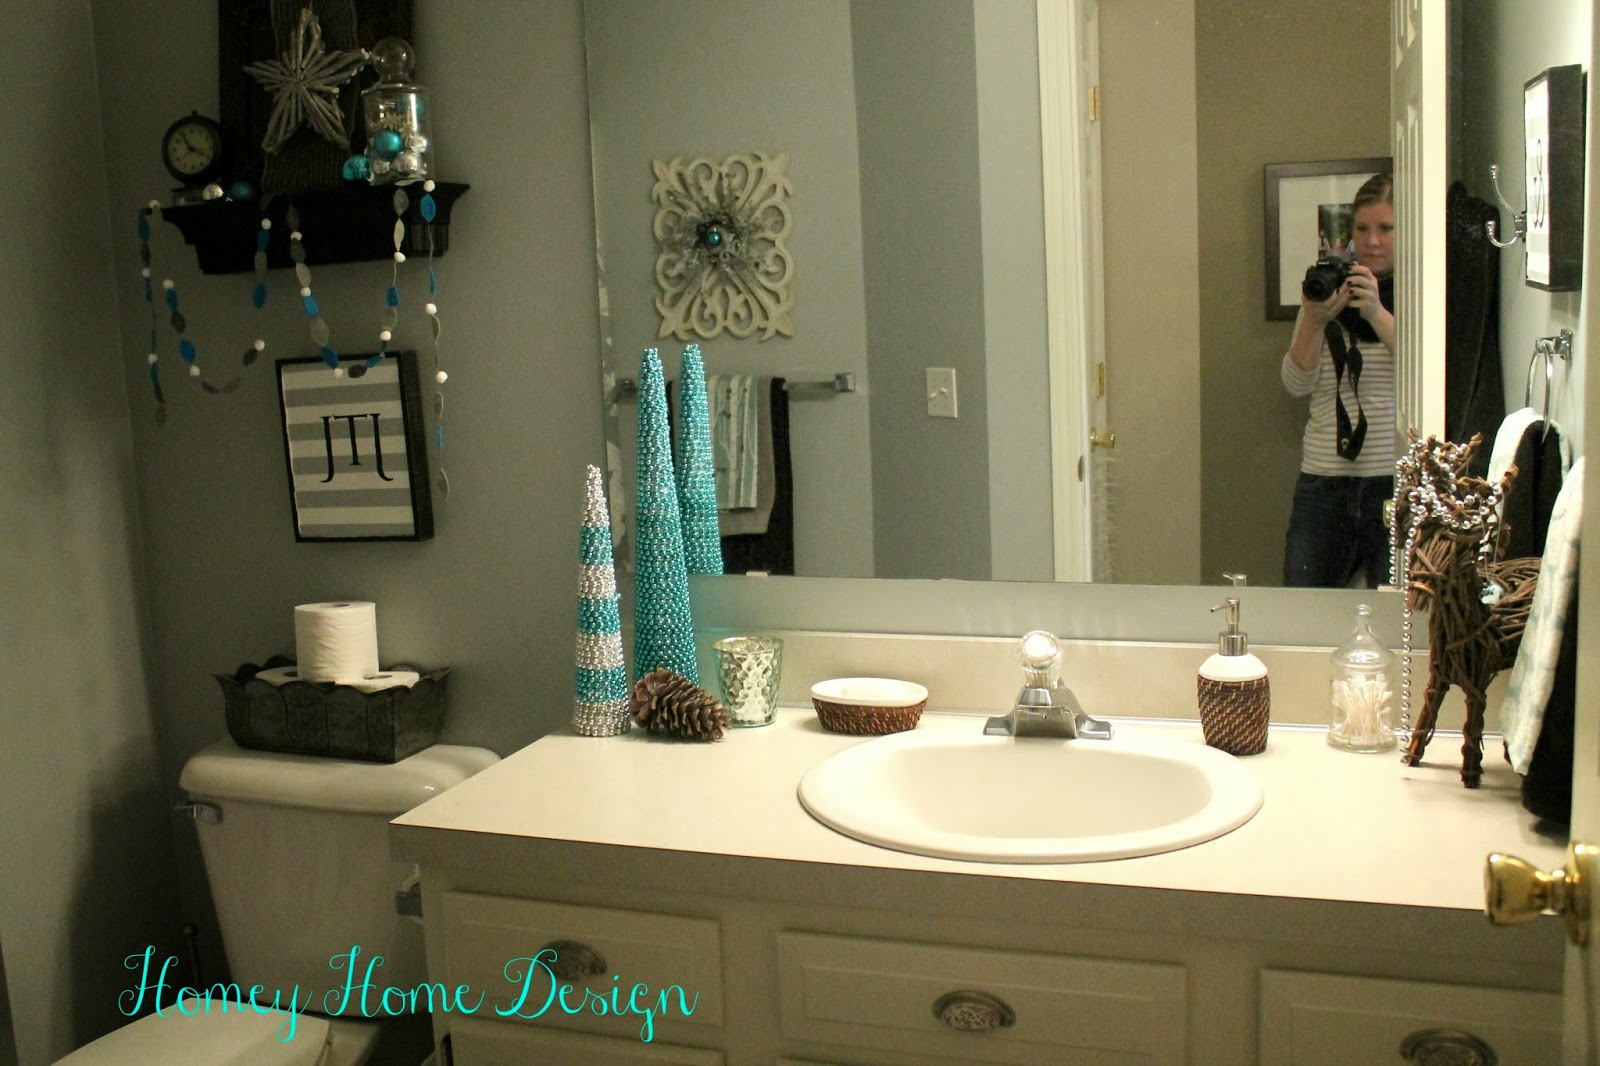 Homey home design bathroom christmas ideas for Decorated bathrooms photos